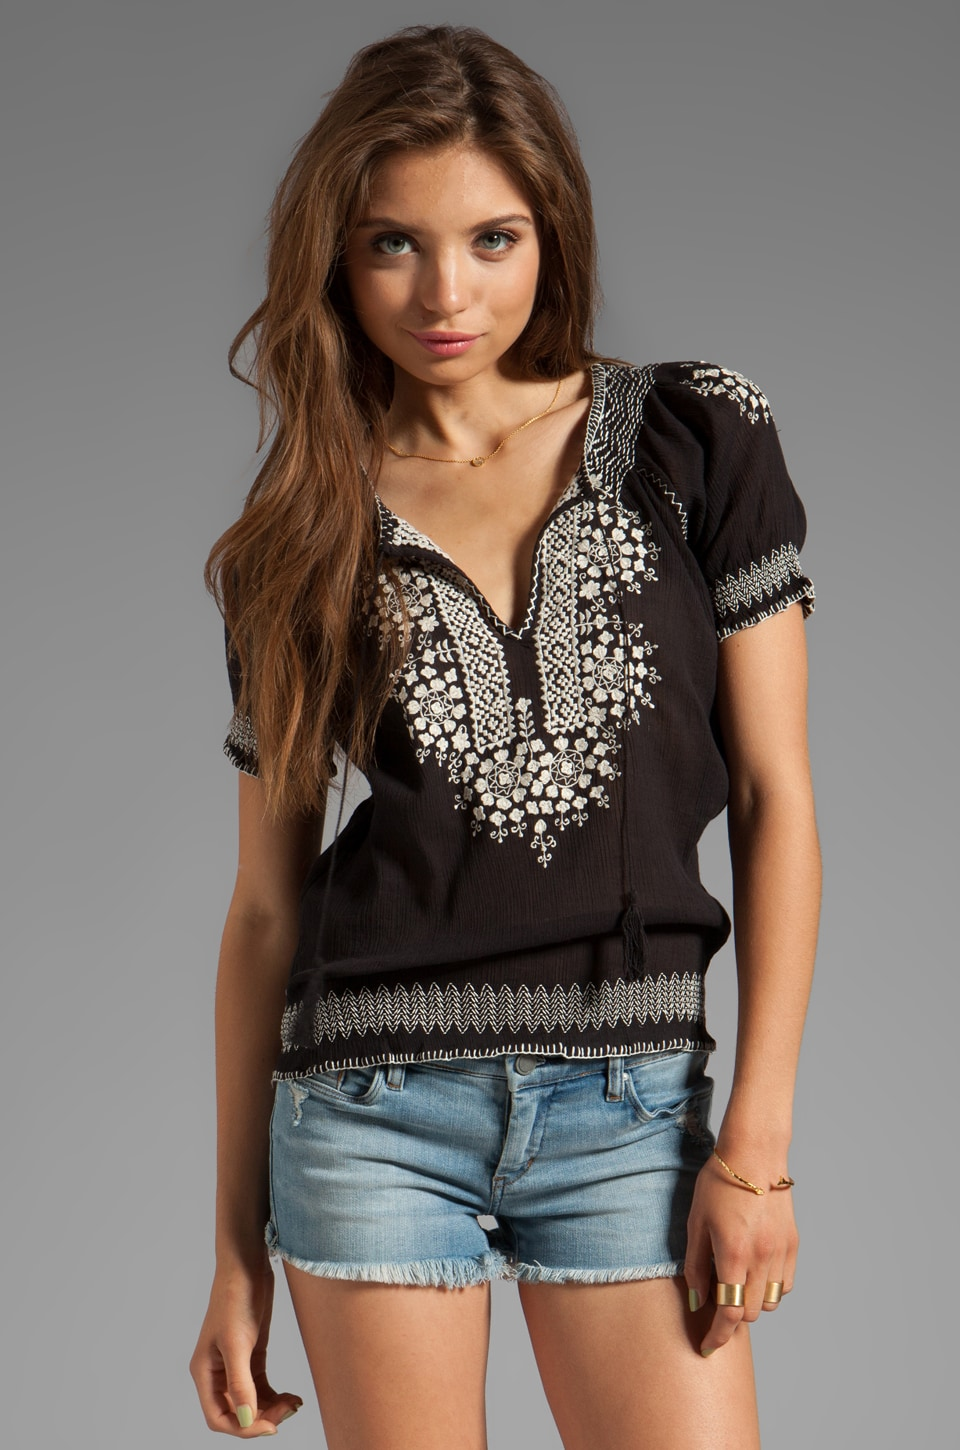 Joie Jamine Embroidery Top in Caviar/New Moon